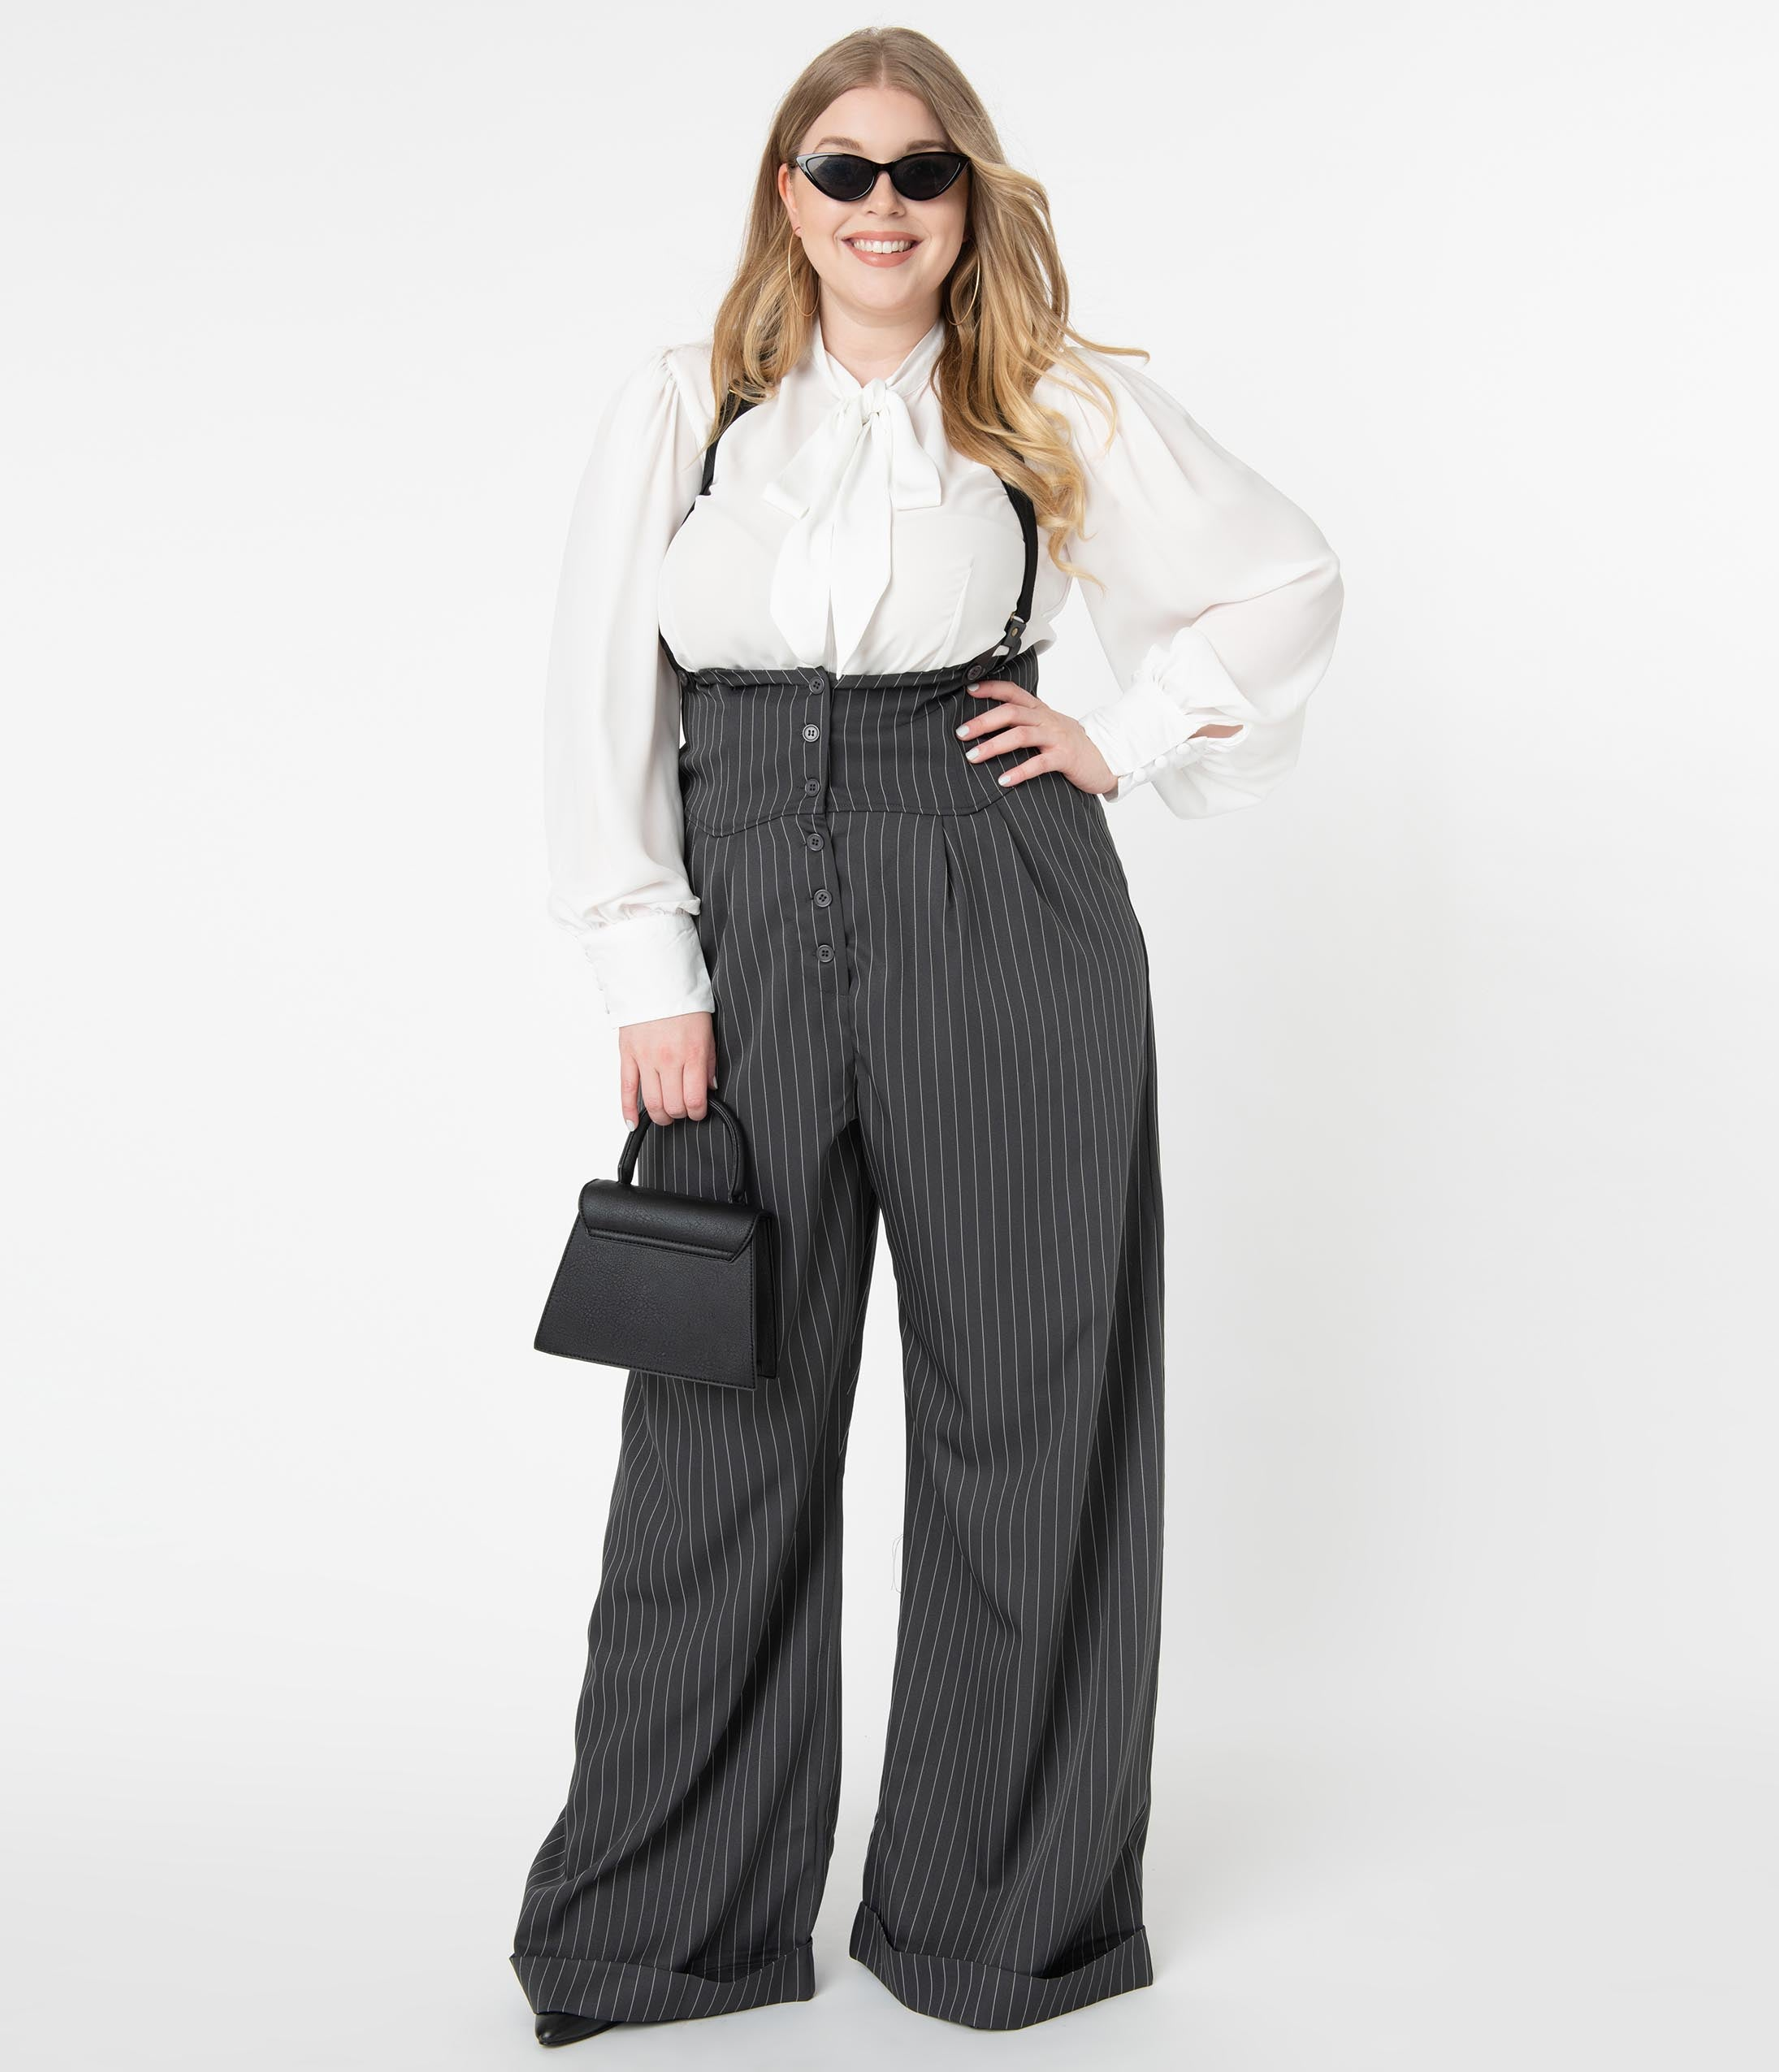 1920s Style Women's Pants, Trousers, Knickers, Tuxedo Unique Vintage Plus Size 1930S Charcoal Grey Pinstripe Thelma Suspender Pants $78.00 AT vintagedancer.com